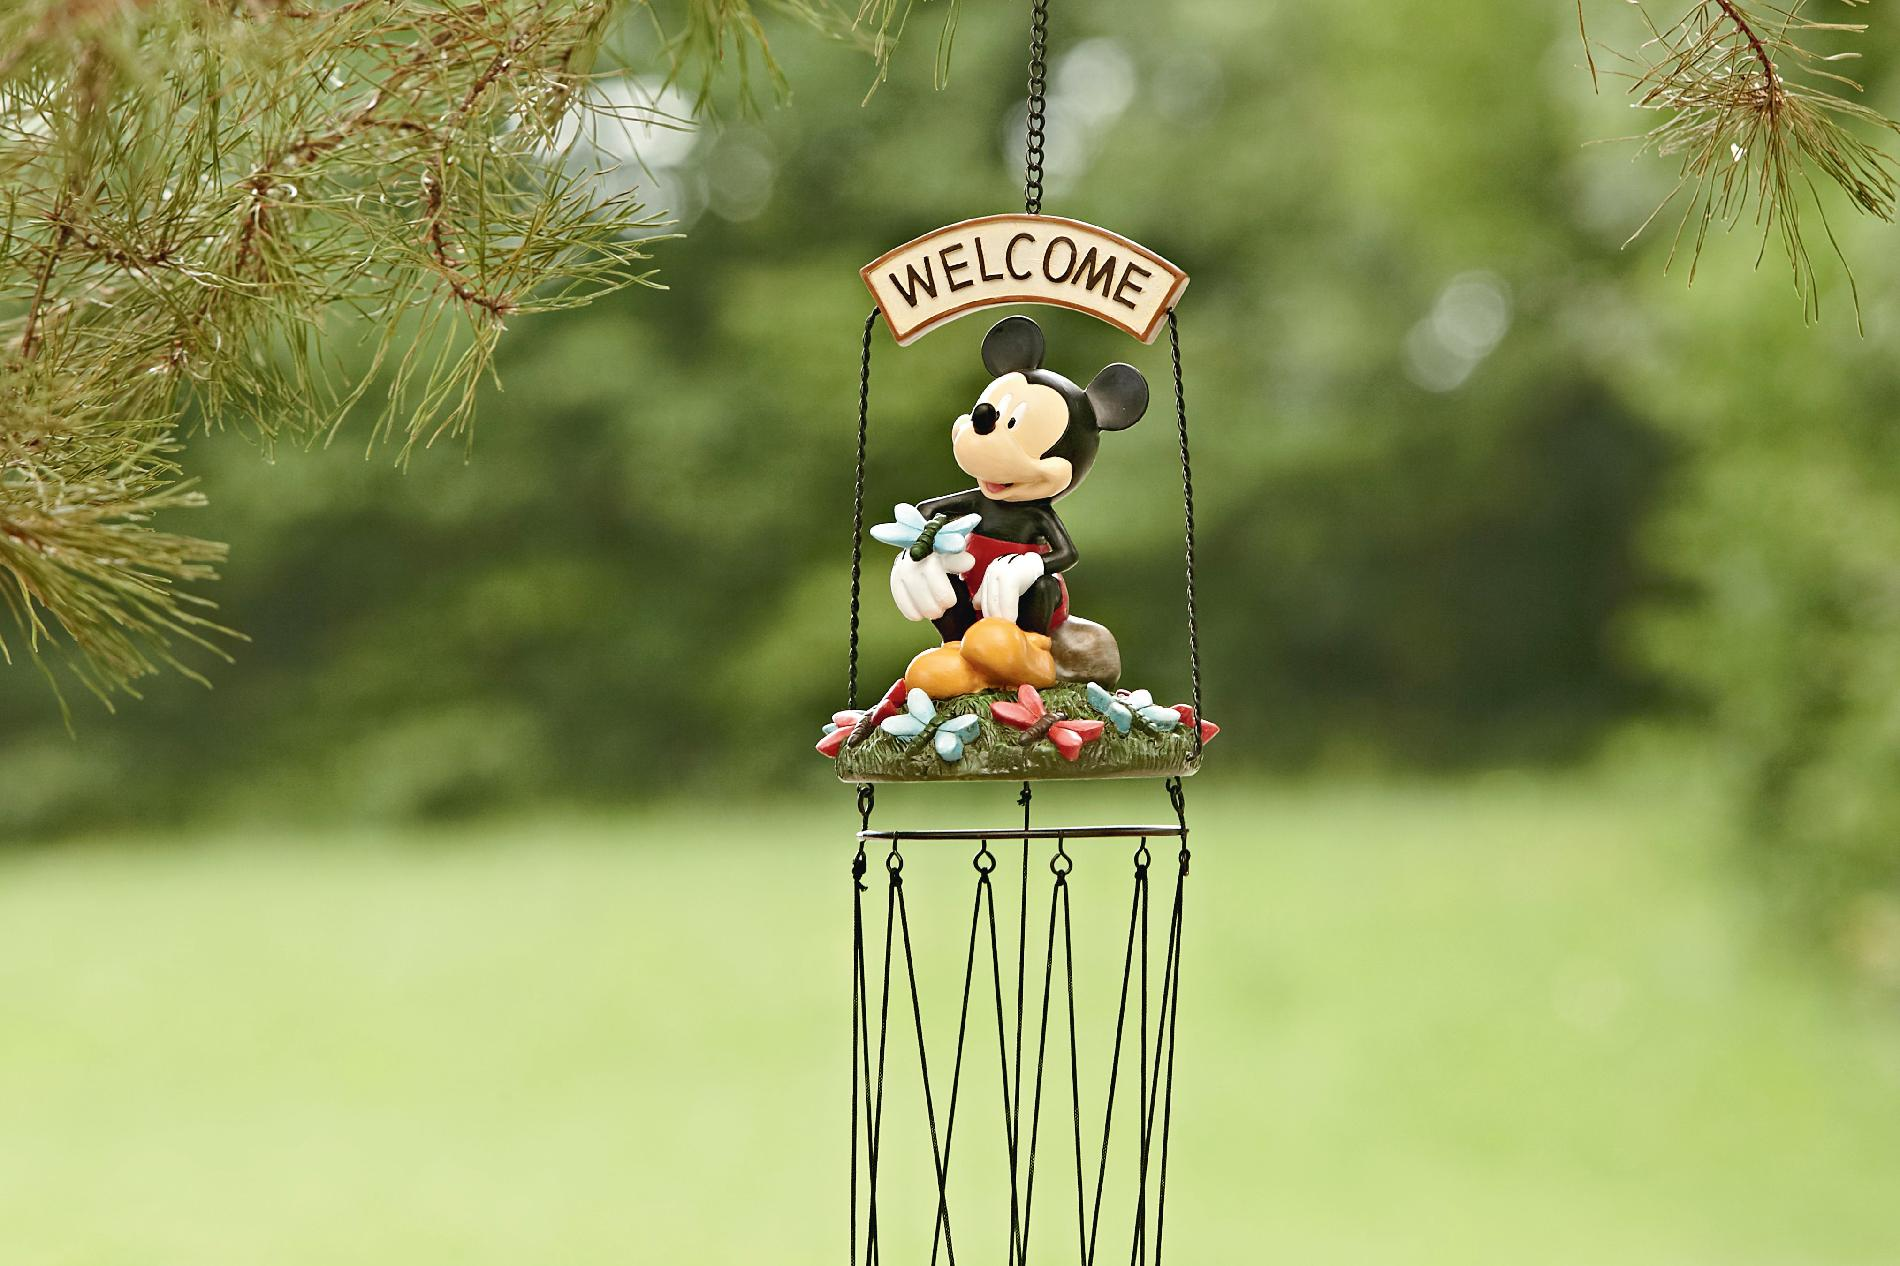 Disney Wind Chime Mickey Mouse